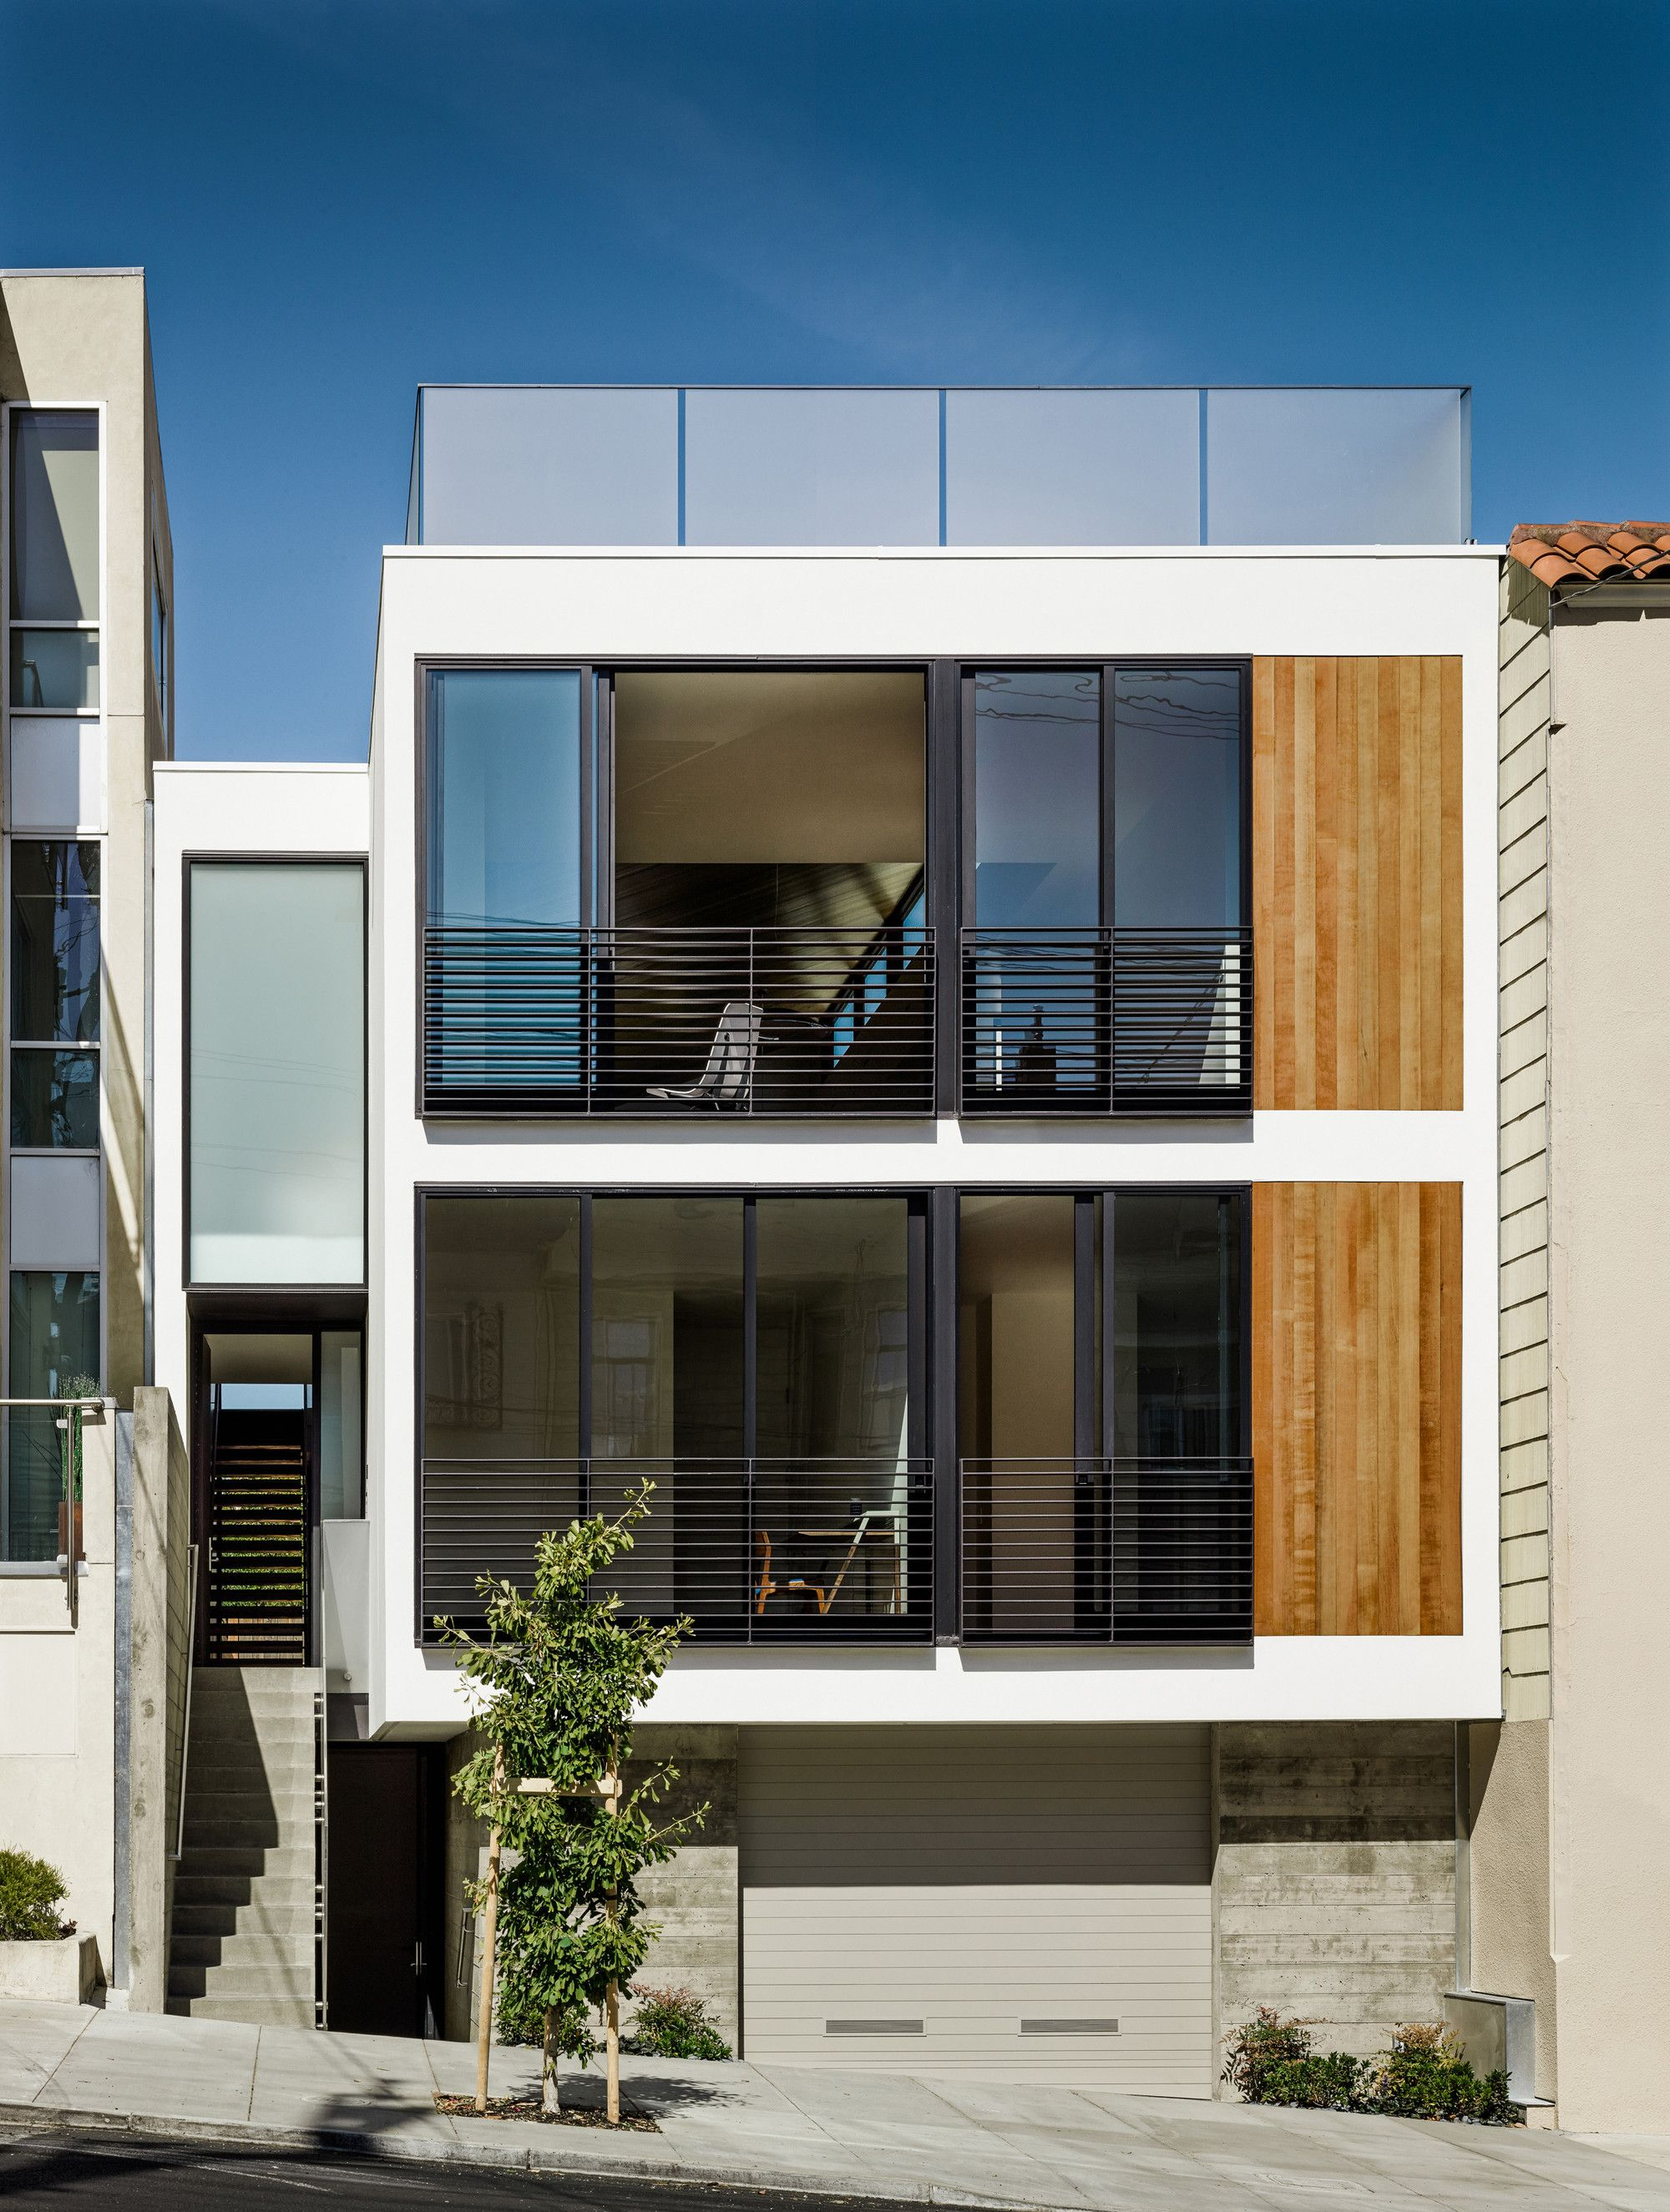 Built by Michael Hennessey Architecture in San Francisco, United States with date 2014. Images by Joe Fletcher. The program for this ground-up, single-family residence is organized in a rational manner in an attempt to create vis...